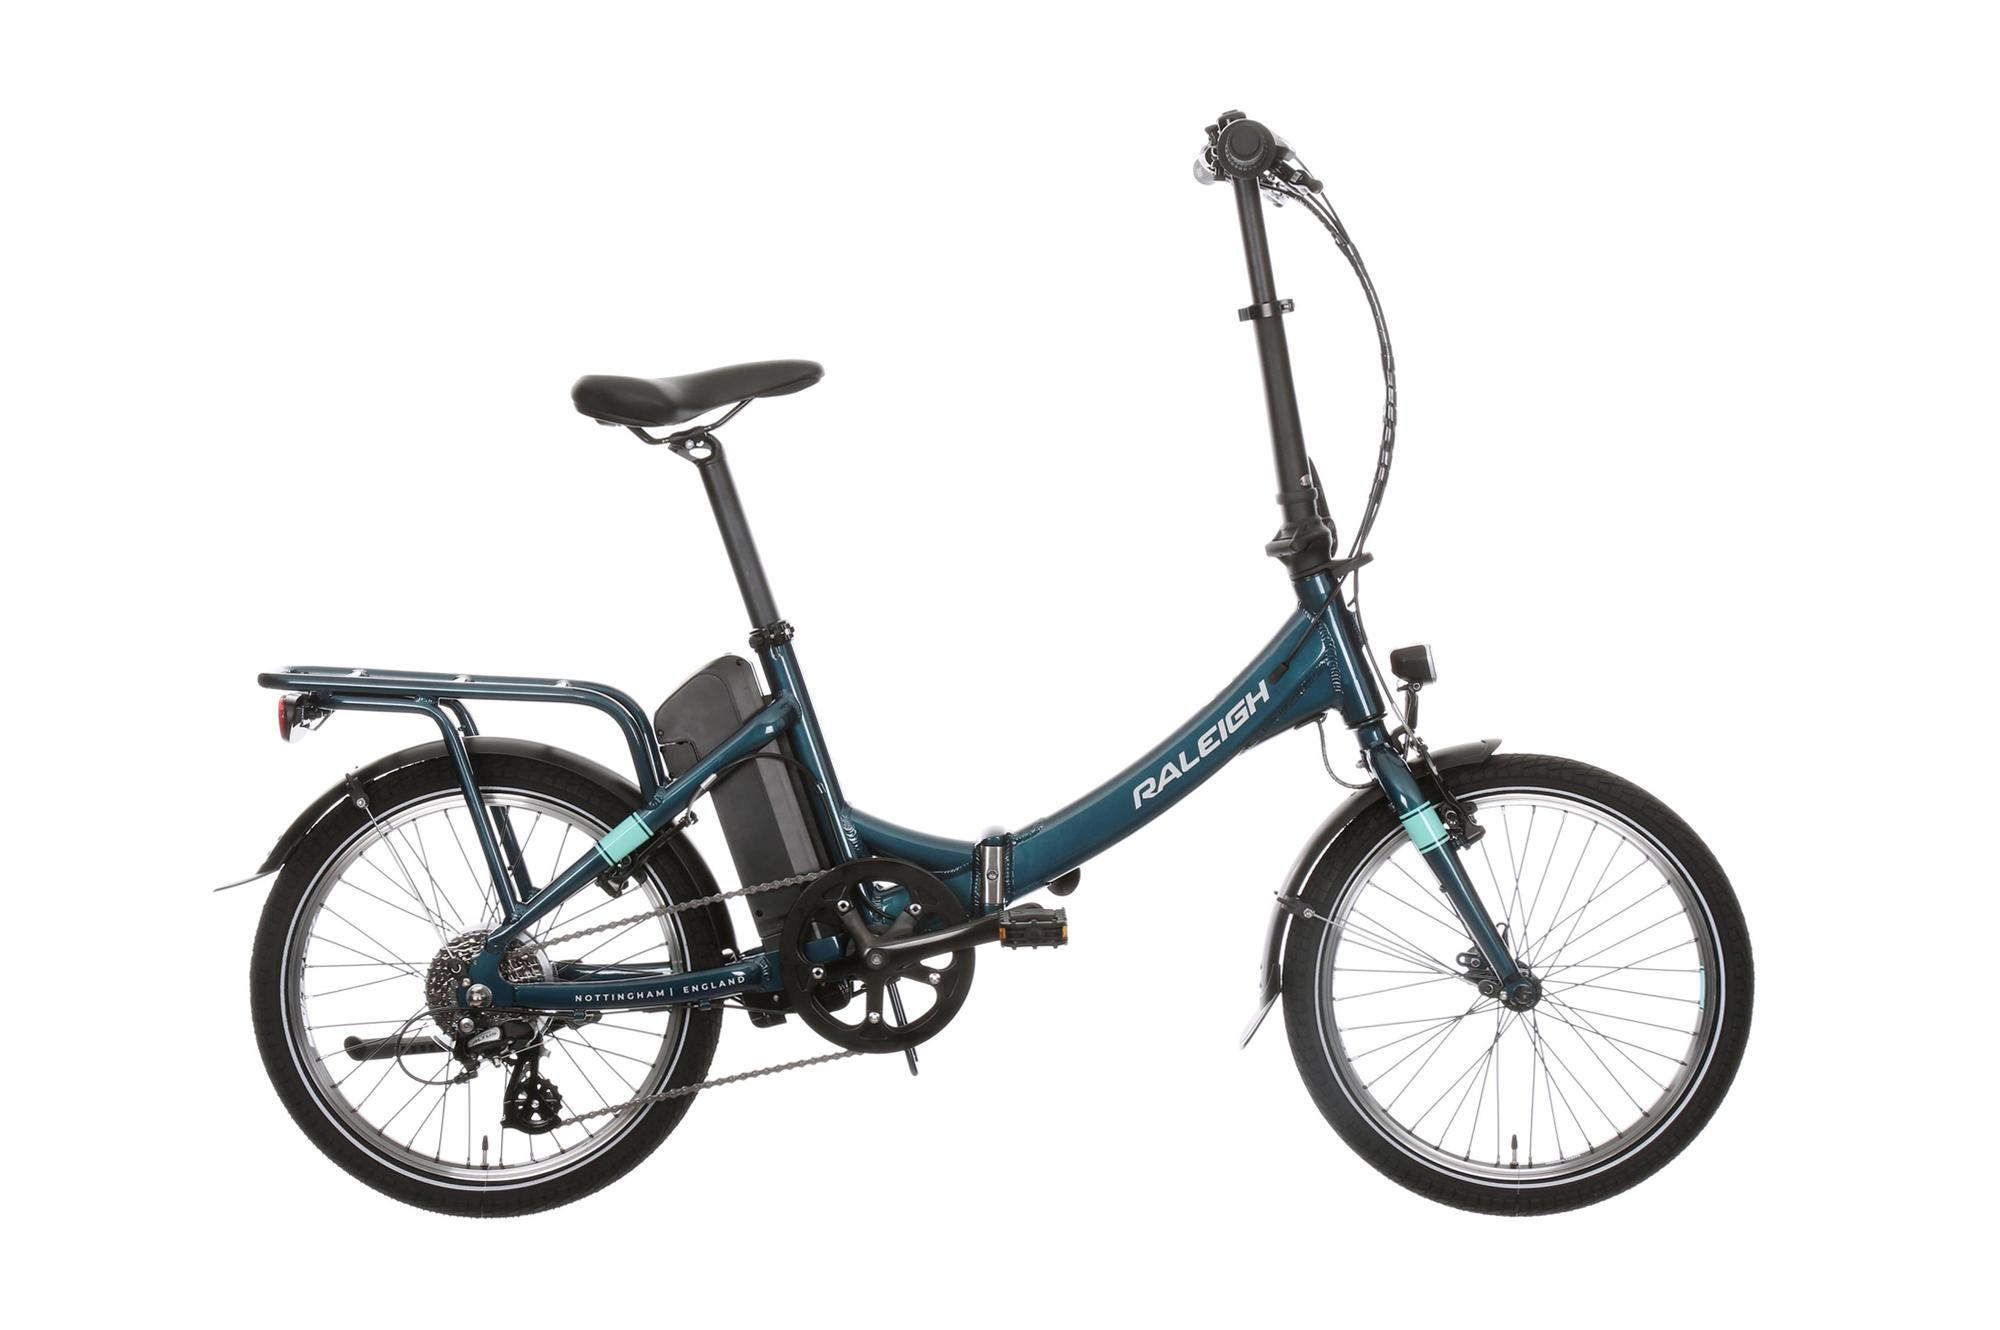 Raleigh Evo folding electric bike